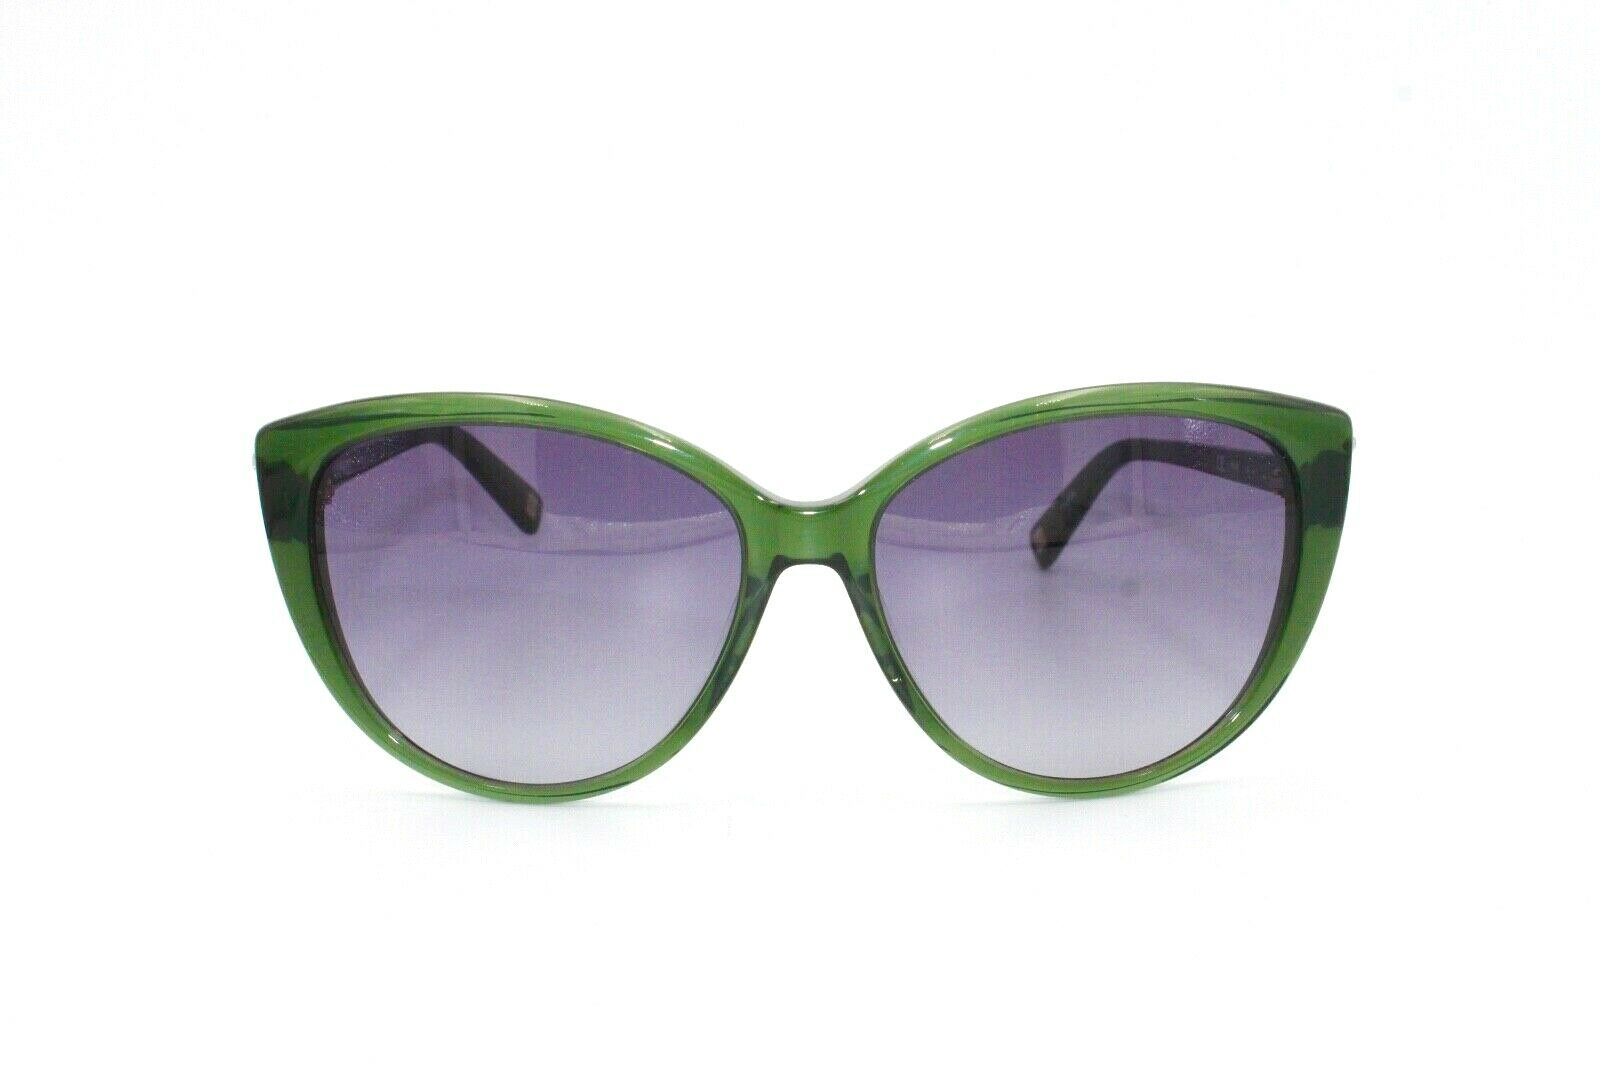 Nine West Sunglasses NW5615 317 58 16 135 - Mydesigneroptic